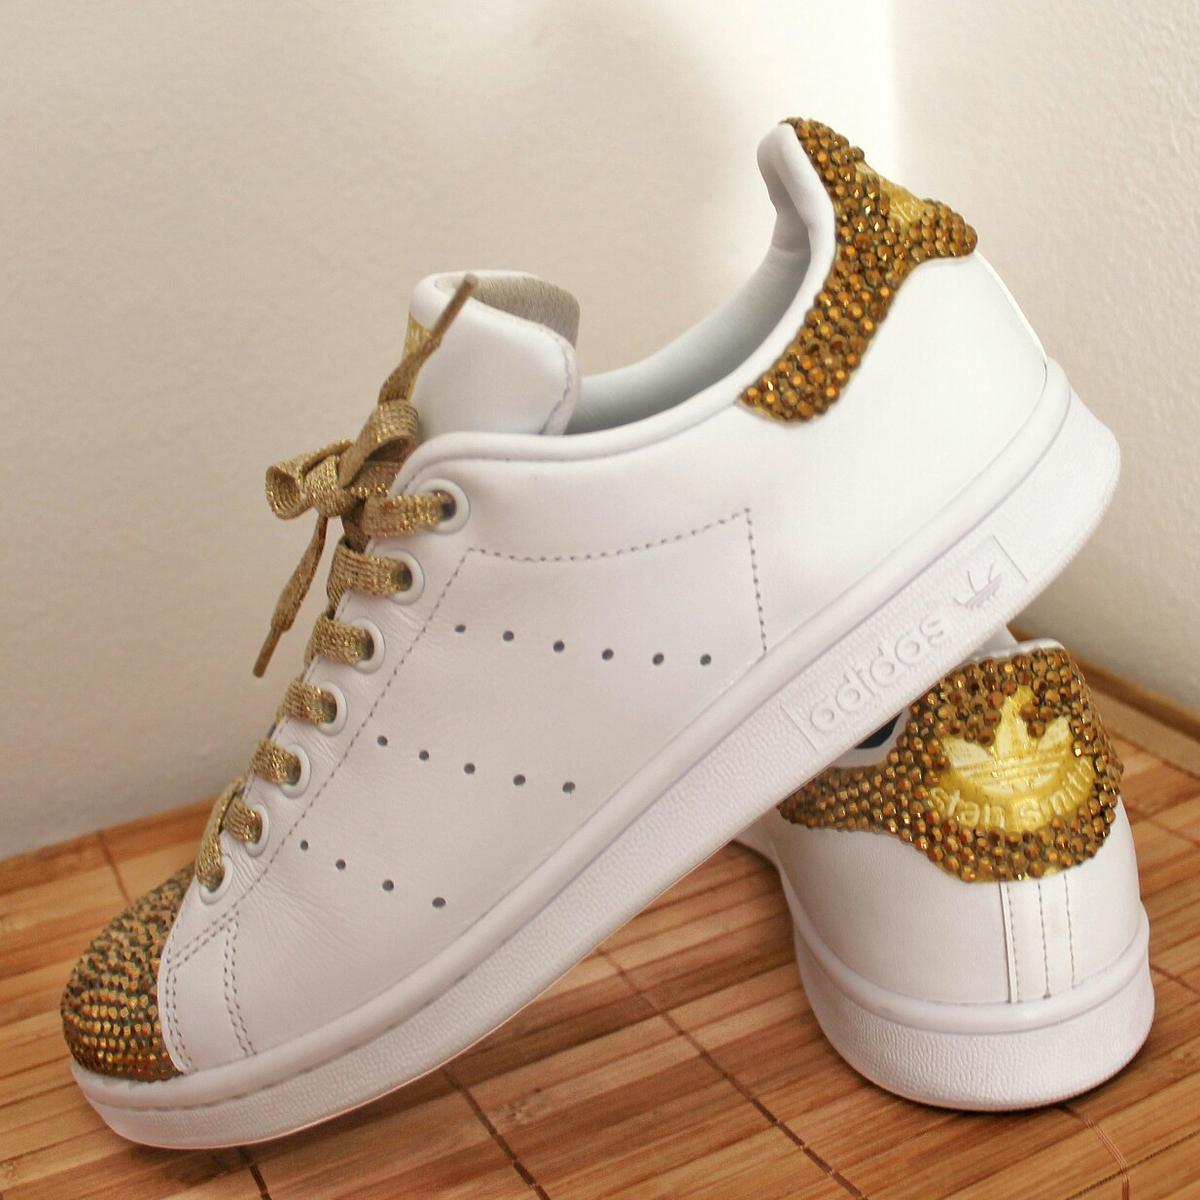 a8840e5fde Adidas Stan Smith Tg. 38 in 30015 Chioggia for €75.00 for sale - Shpock